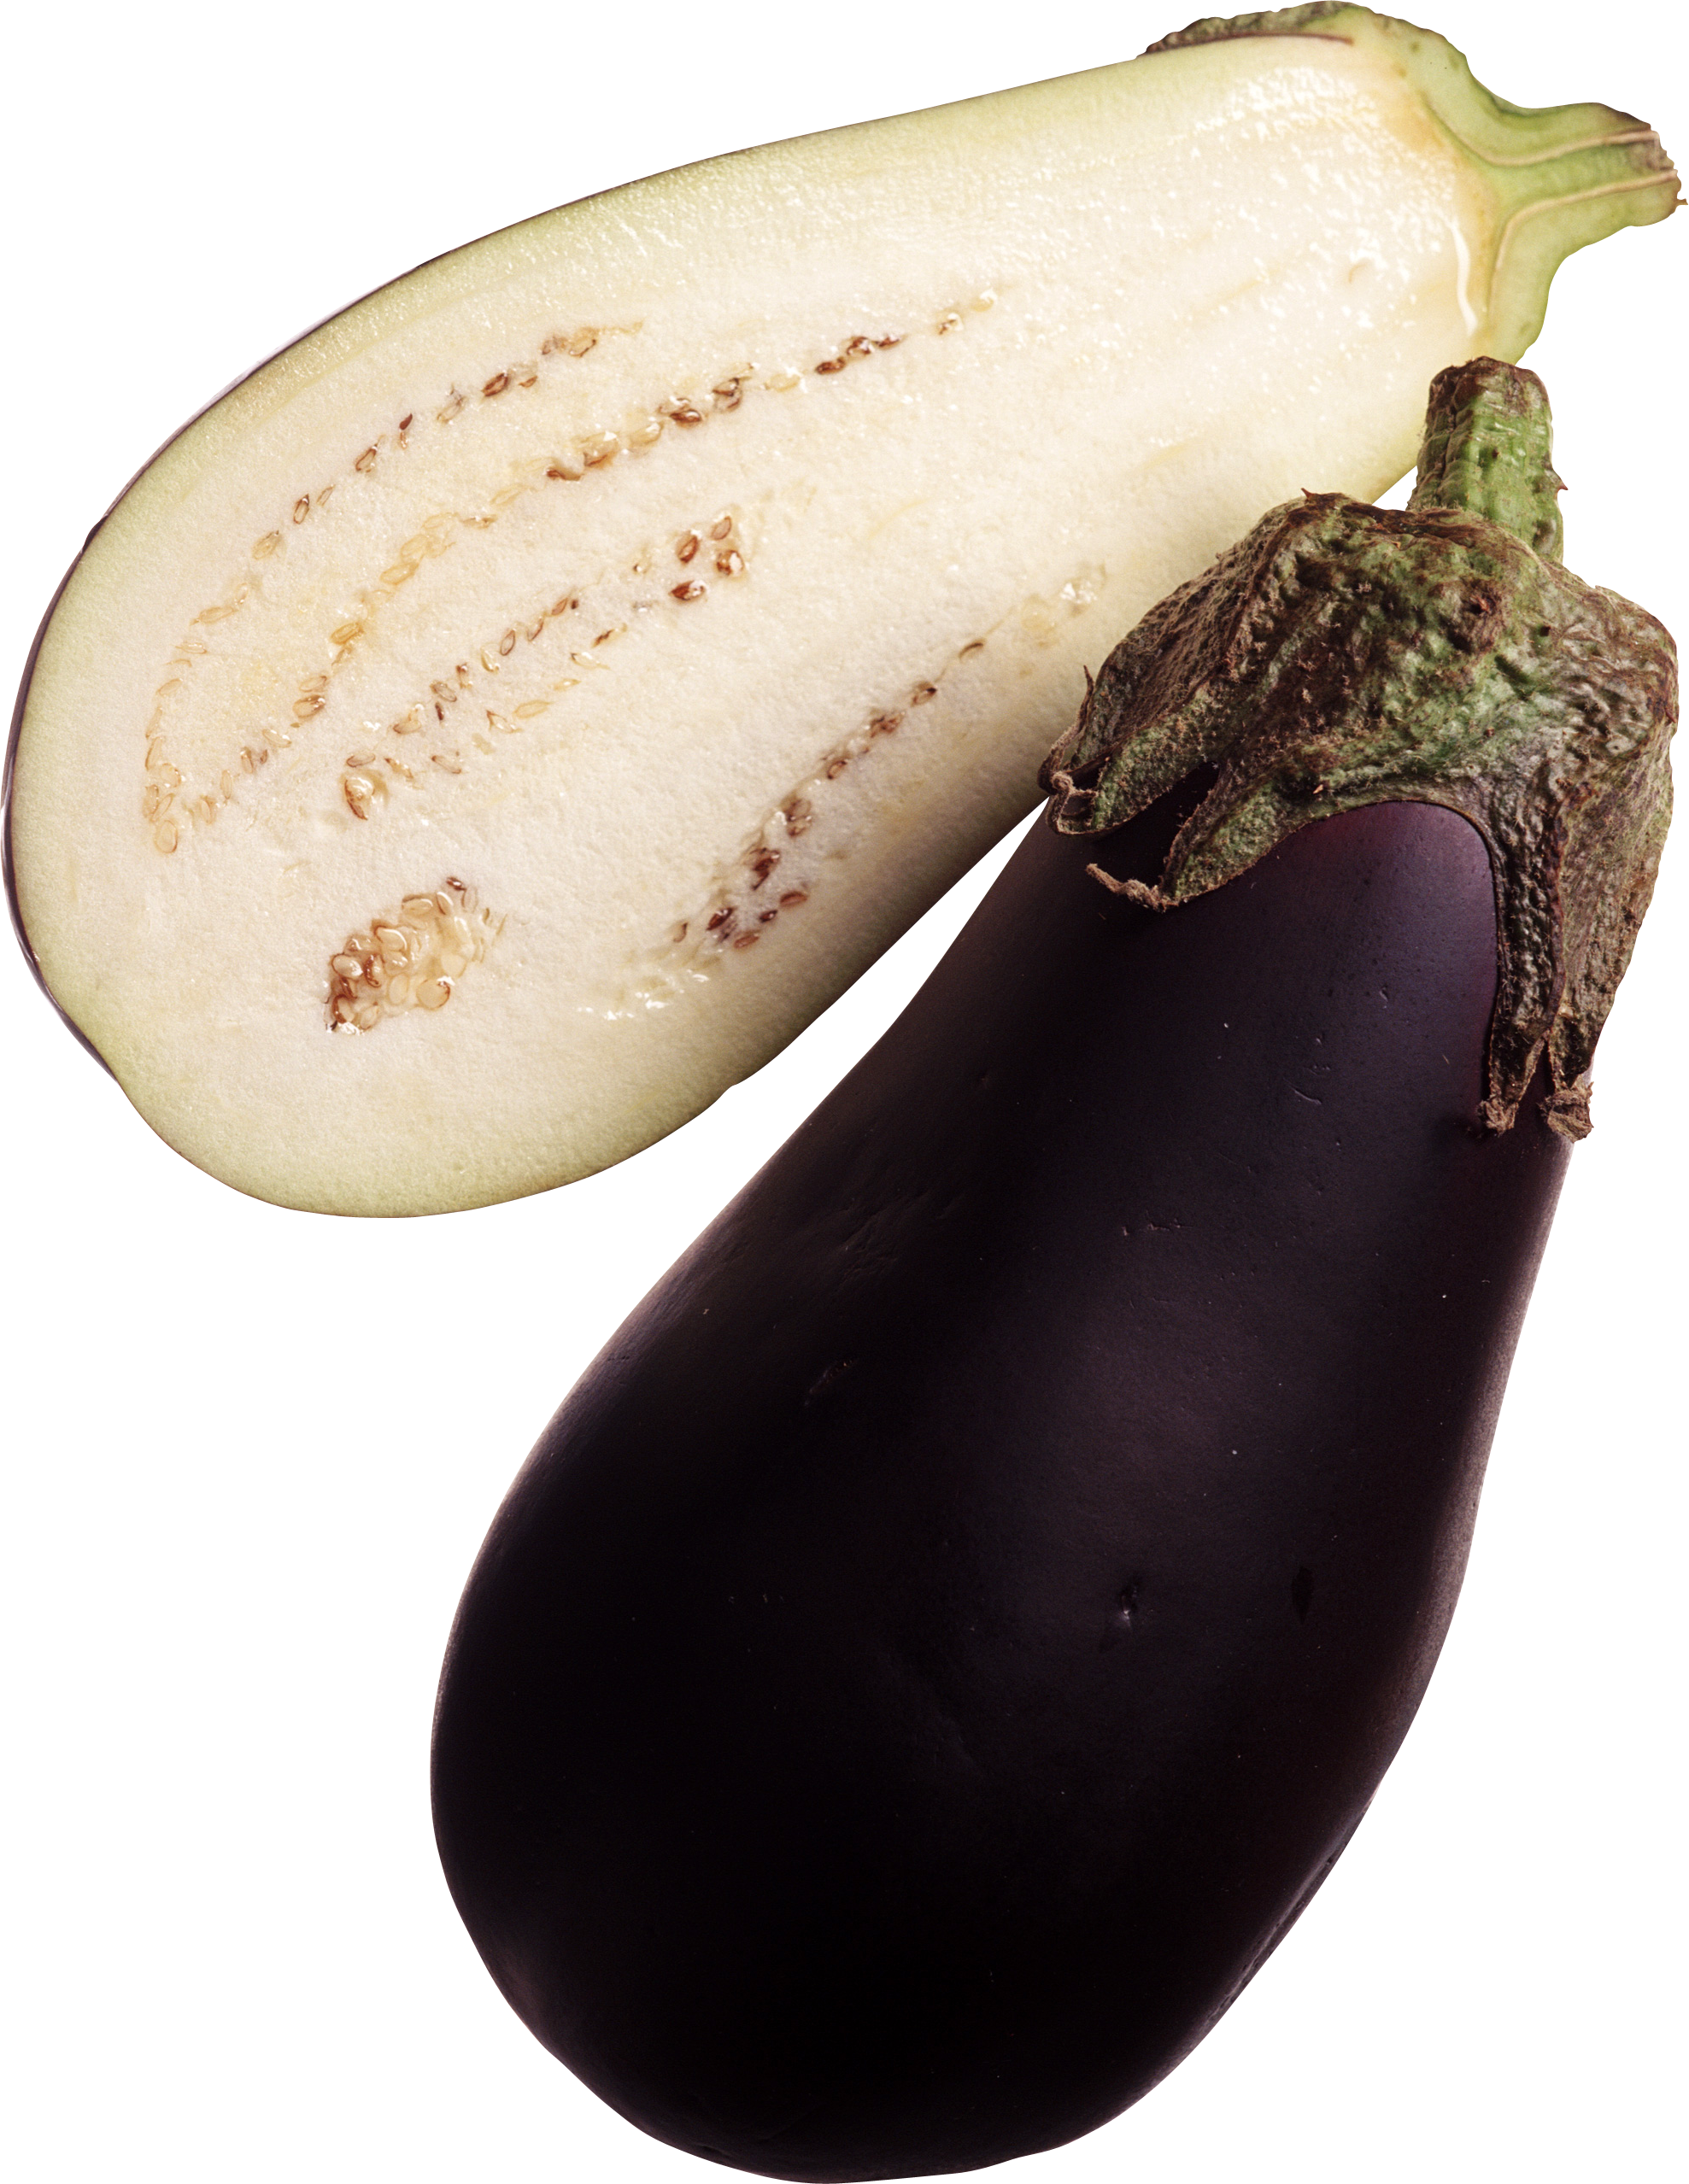 eggplant png image collection download crazypngm crazy png images download #29828